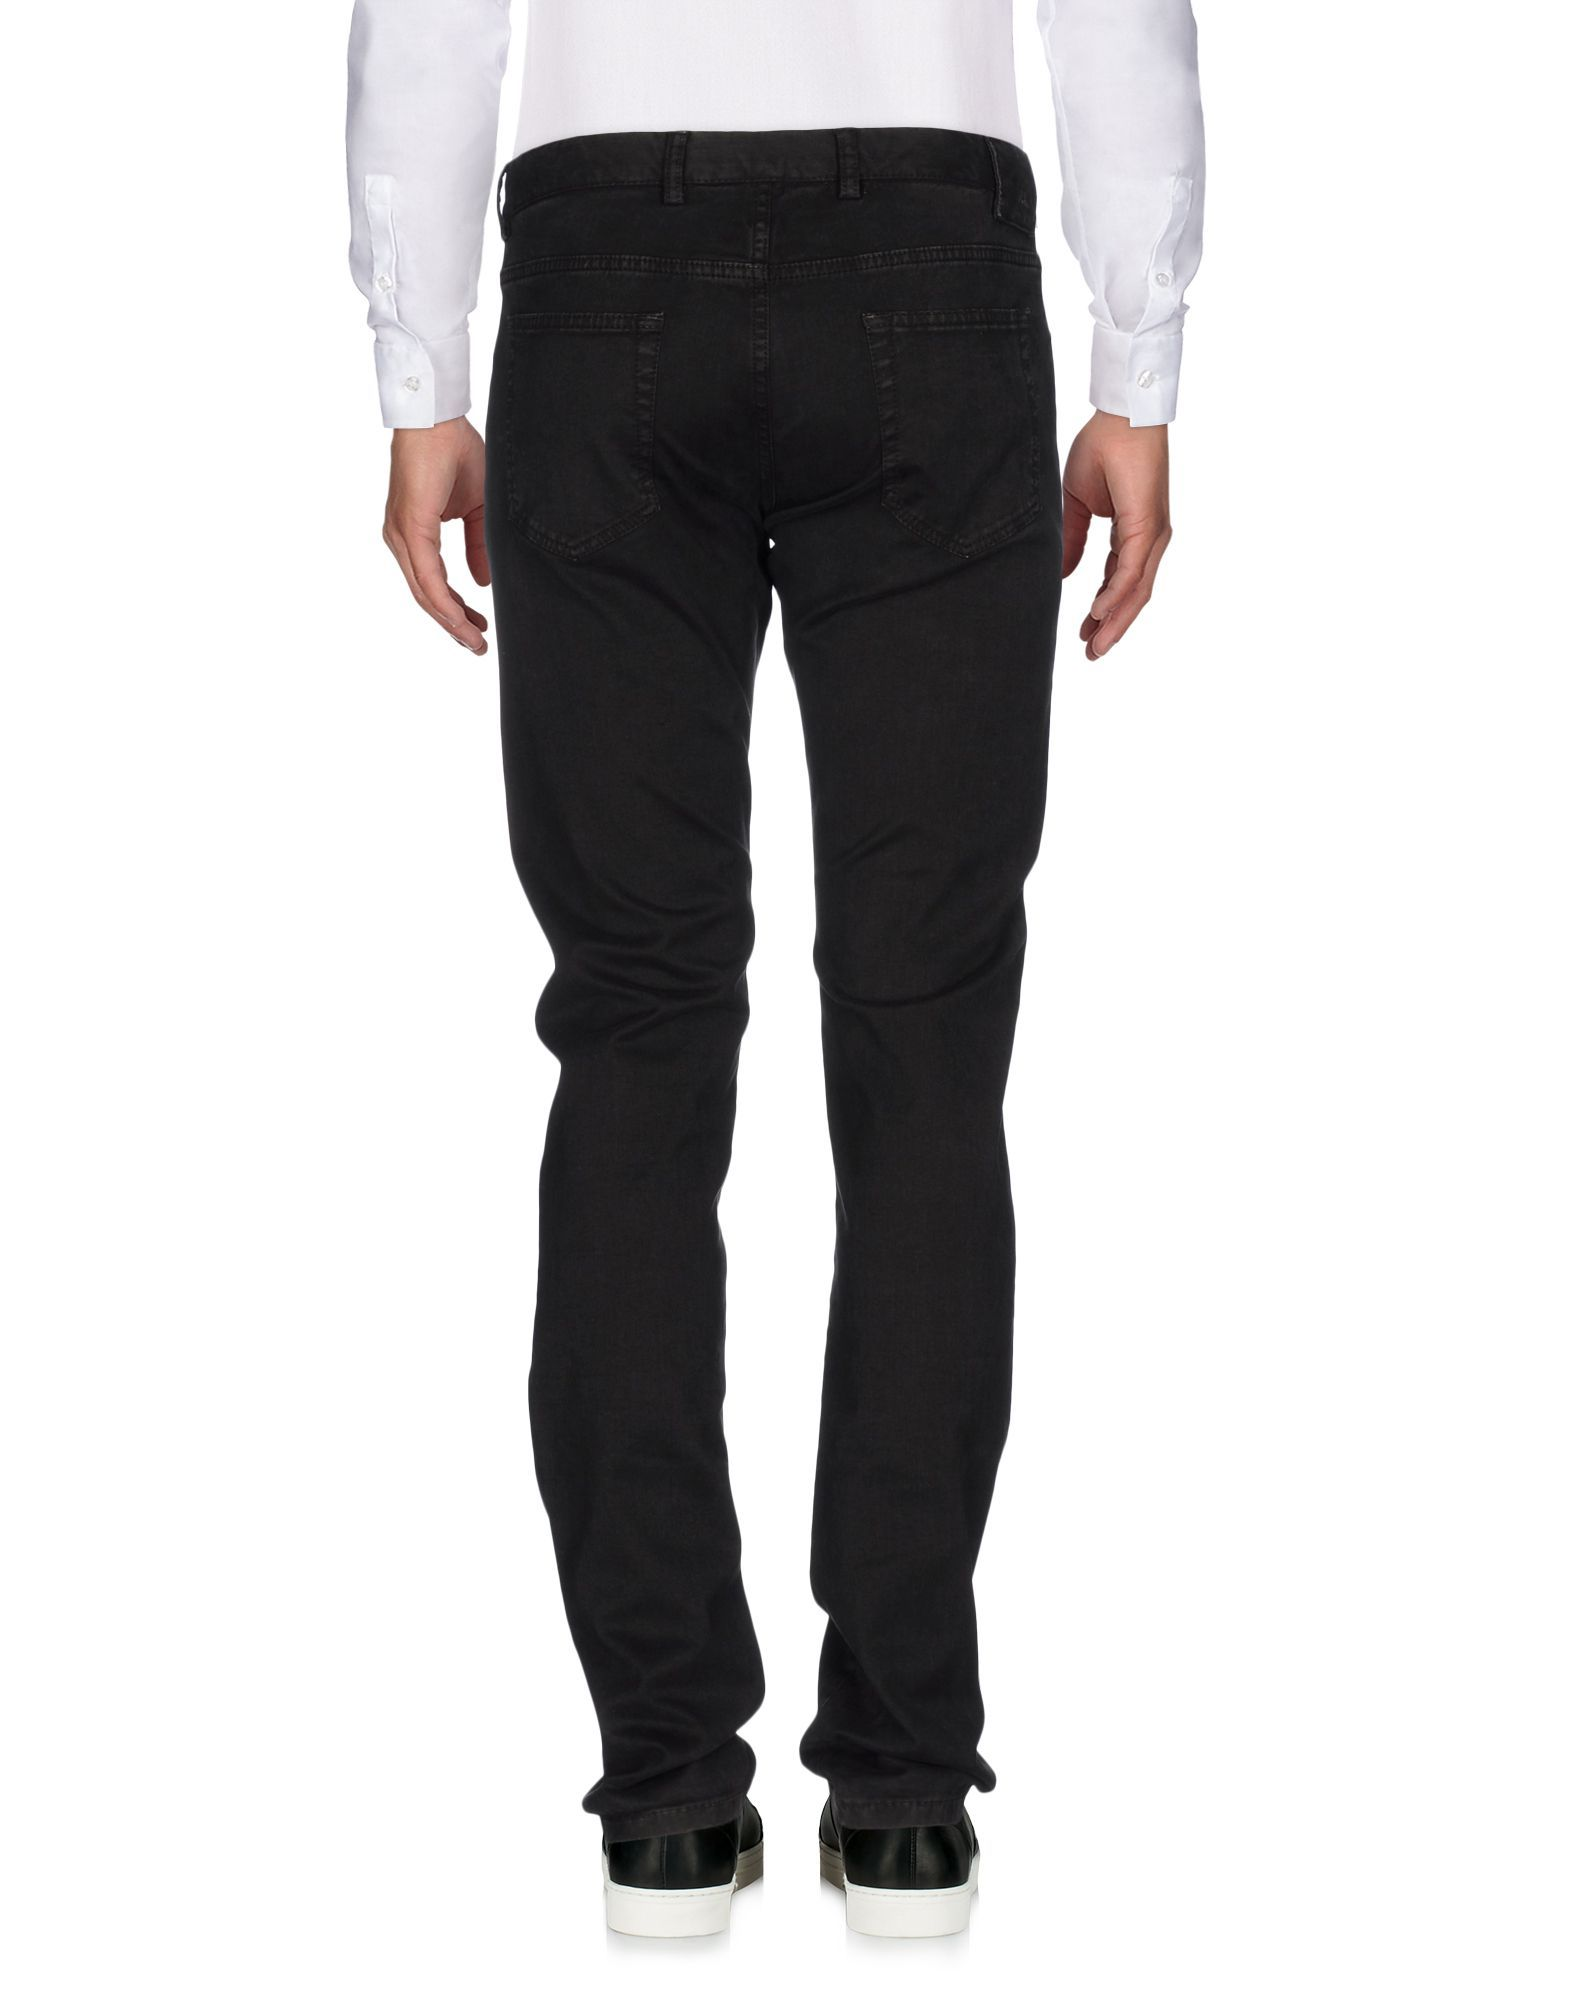 Black mid-rise trousers